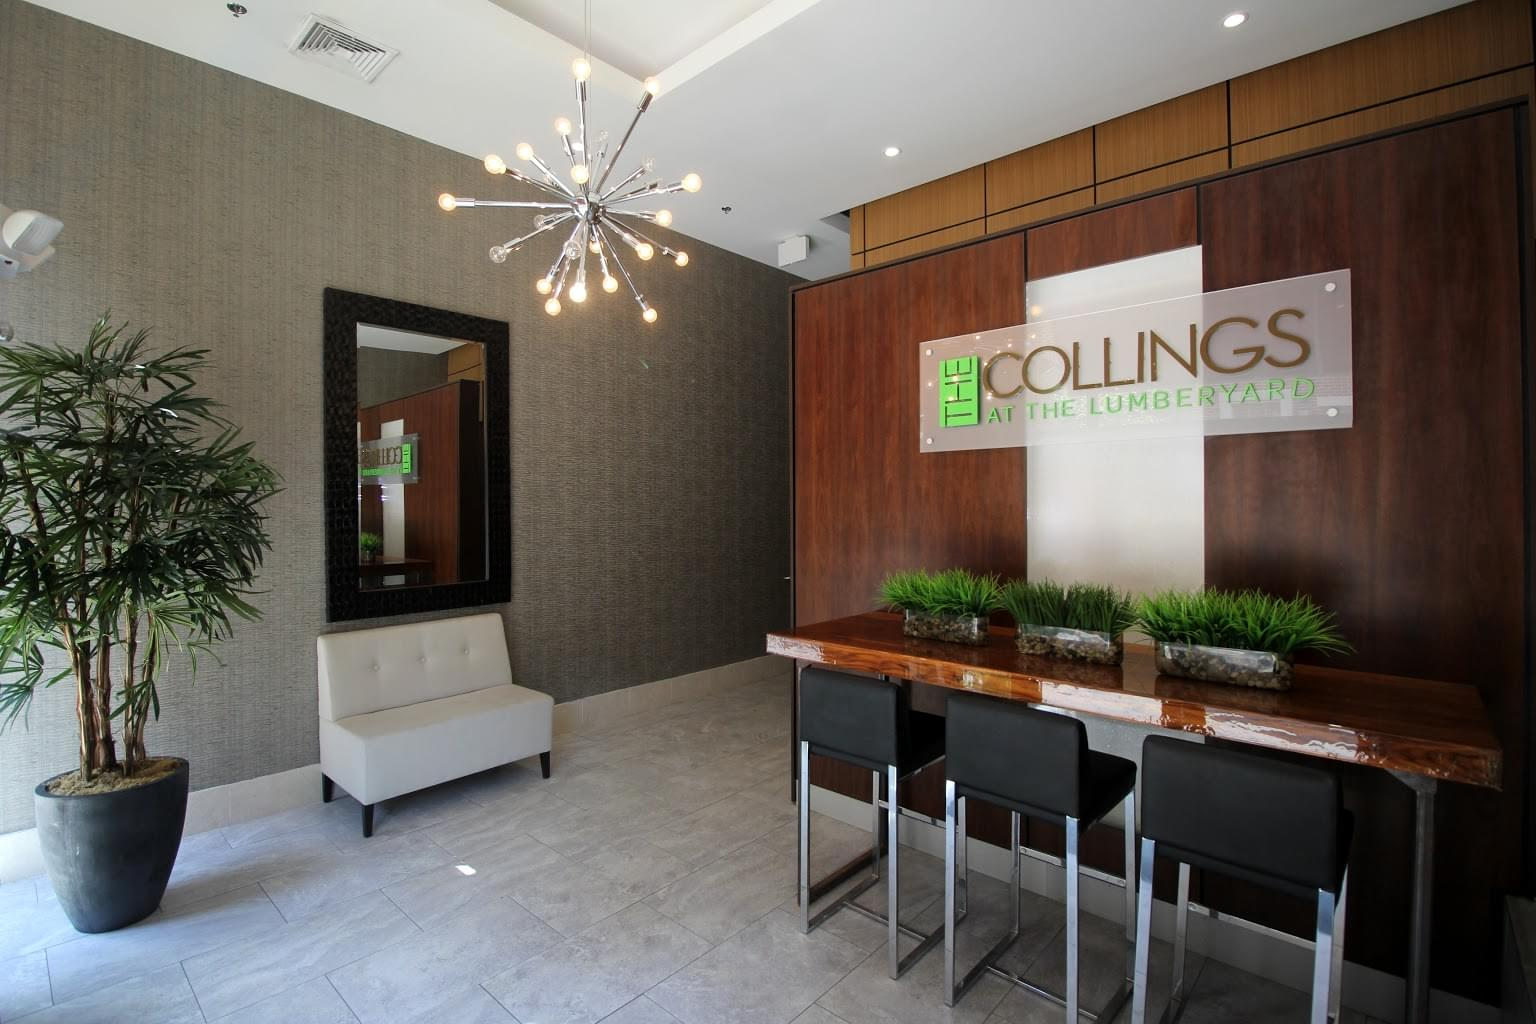 The Collings at The Lumberyard Apartment Complex in Collingswood, NJ